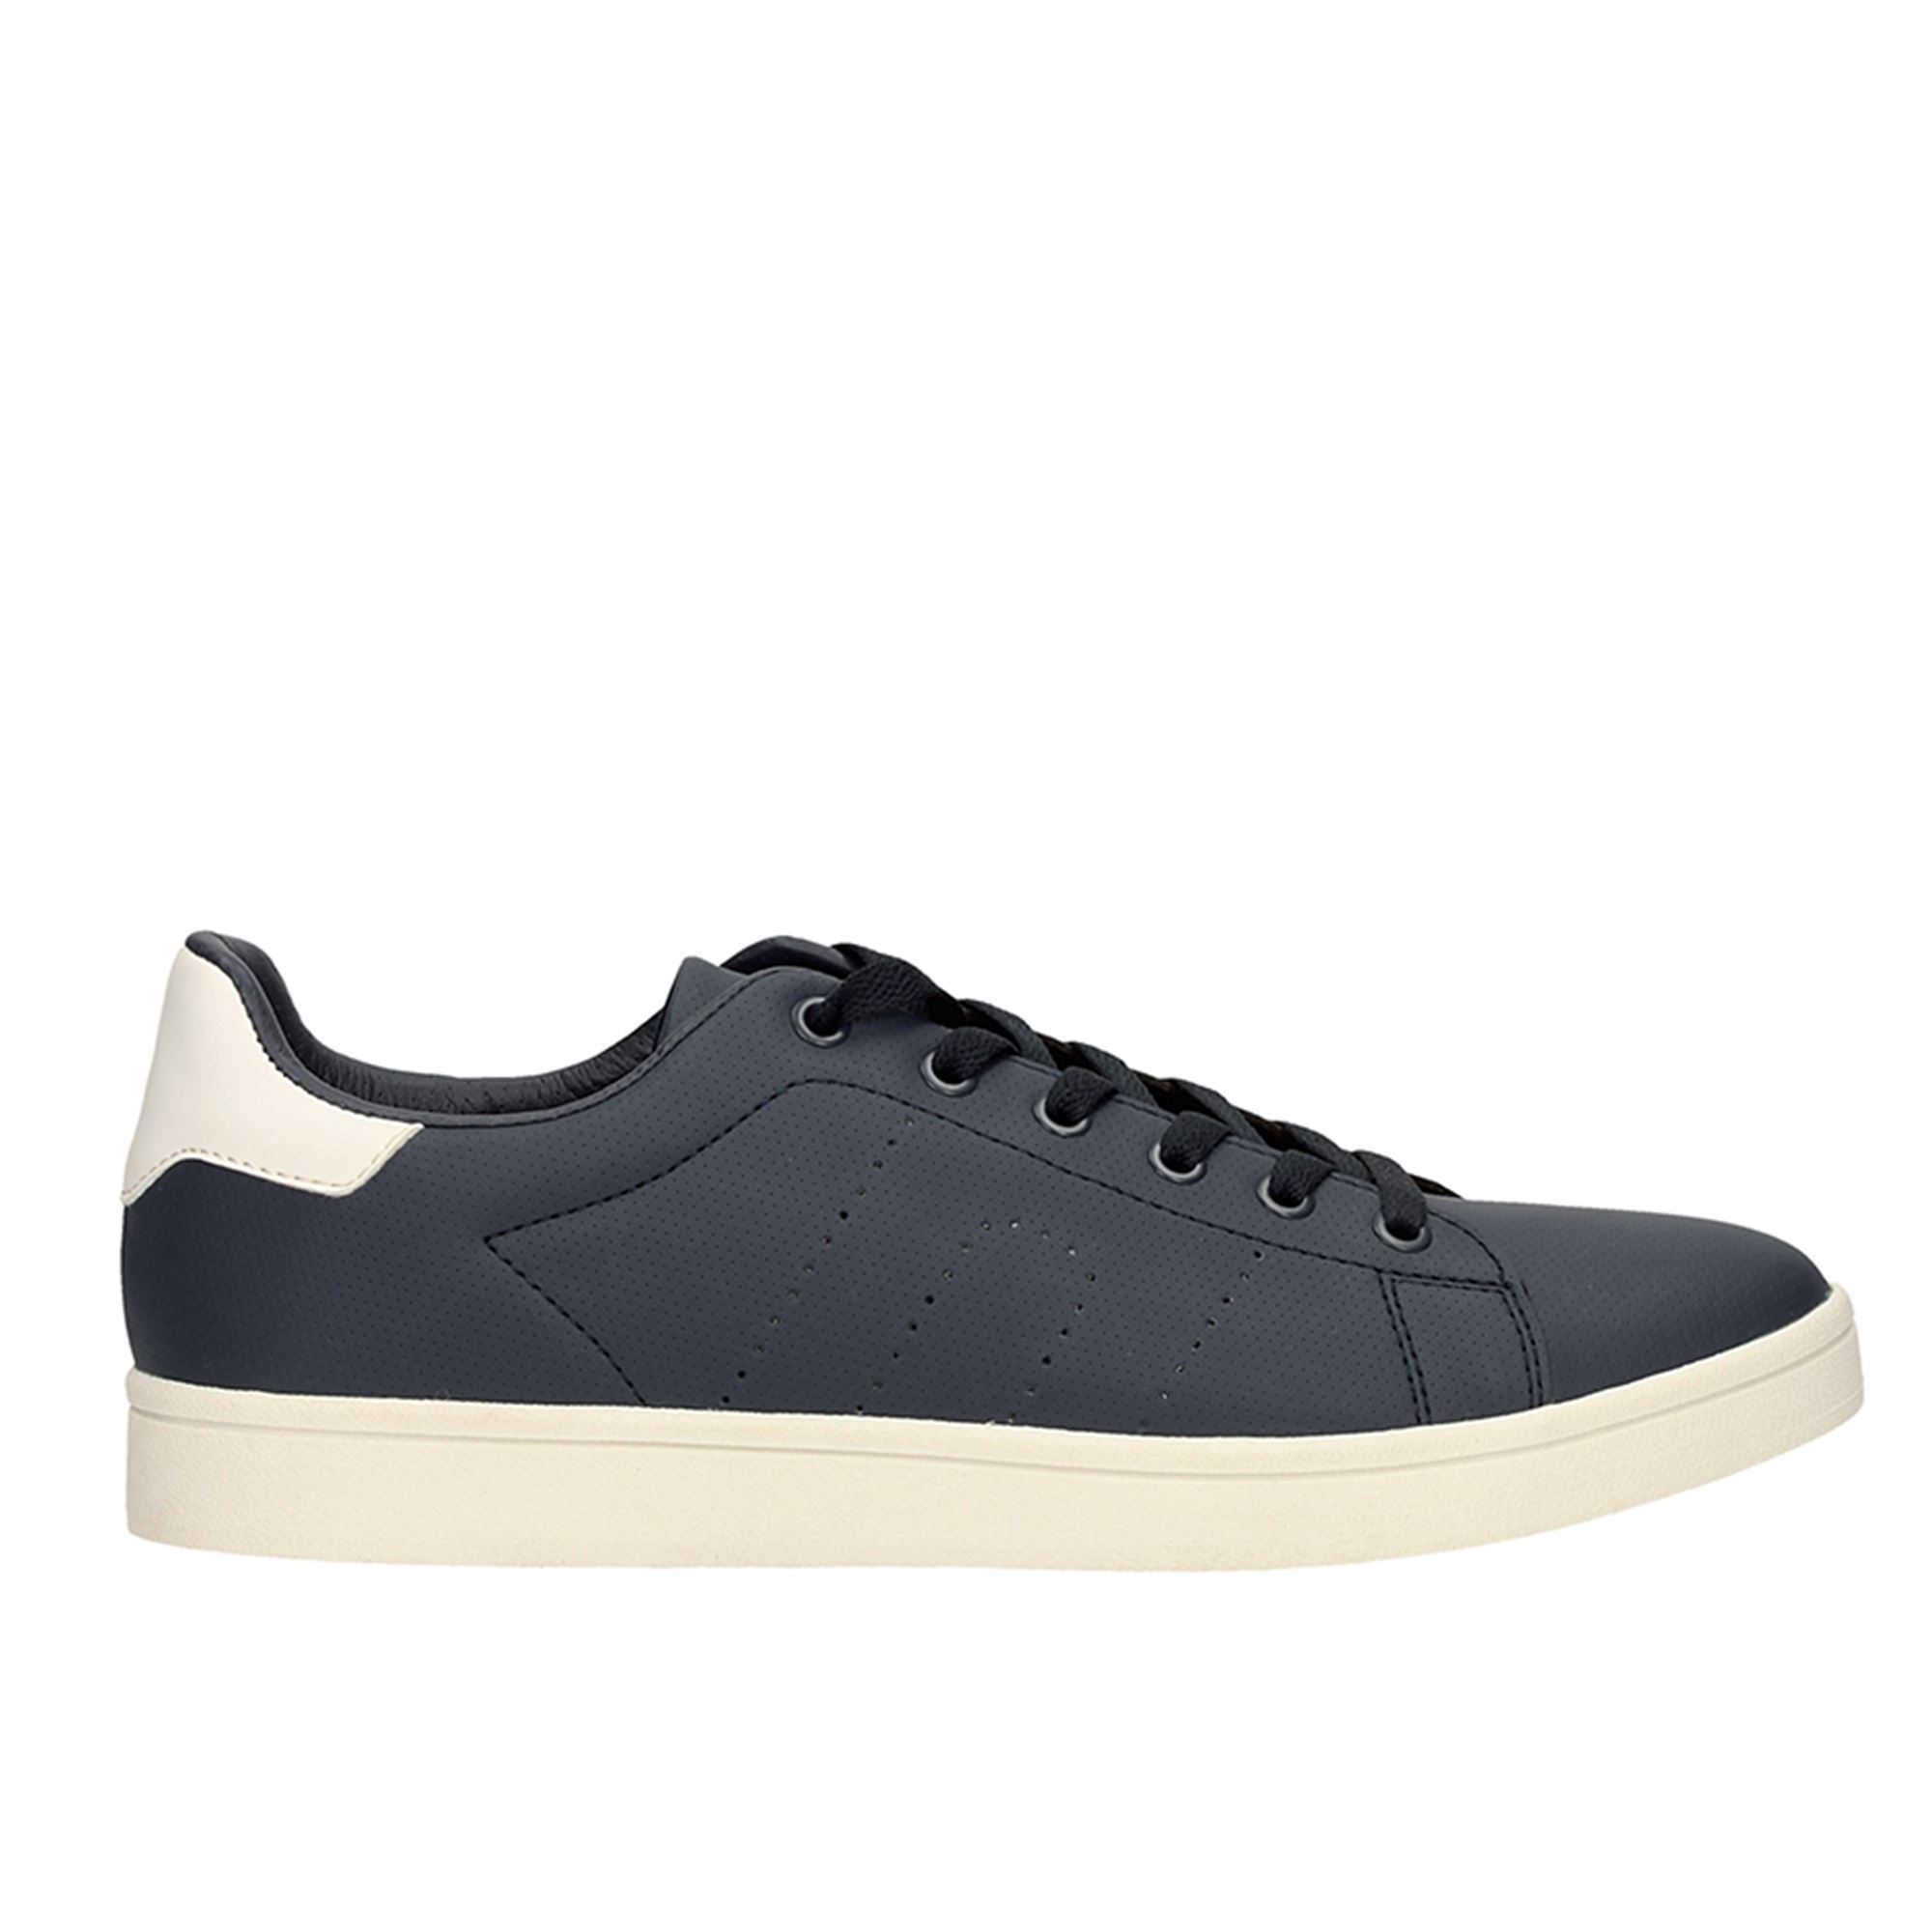 Tata Italia Shoes Man Sneakers Navy 6167